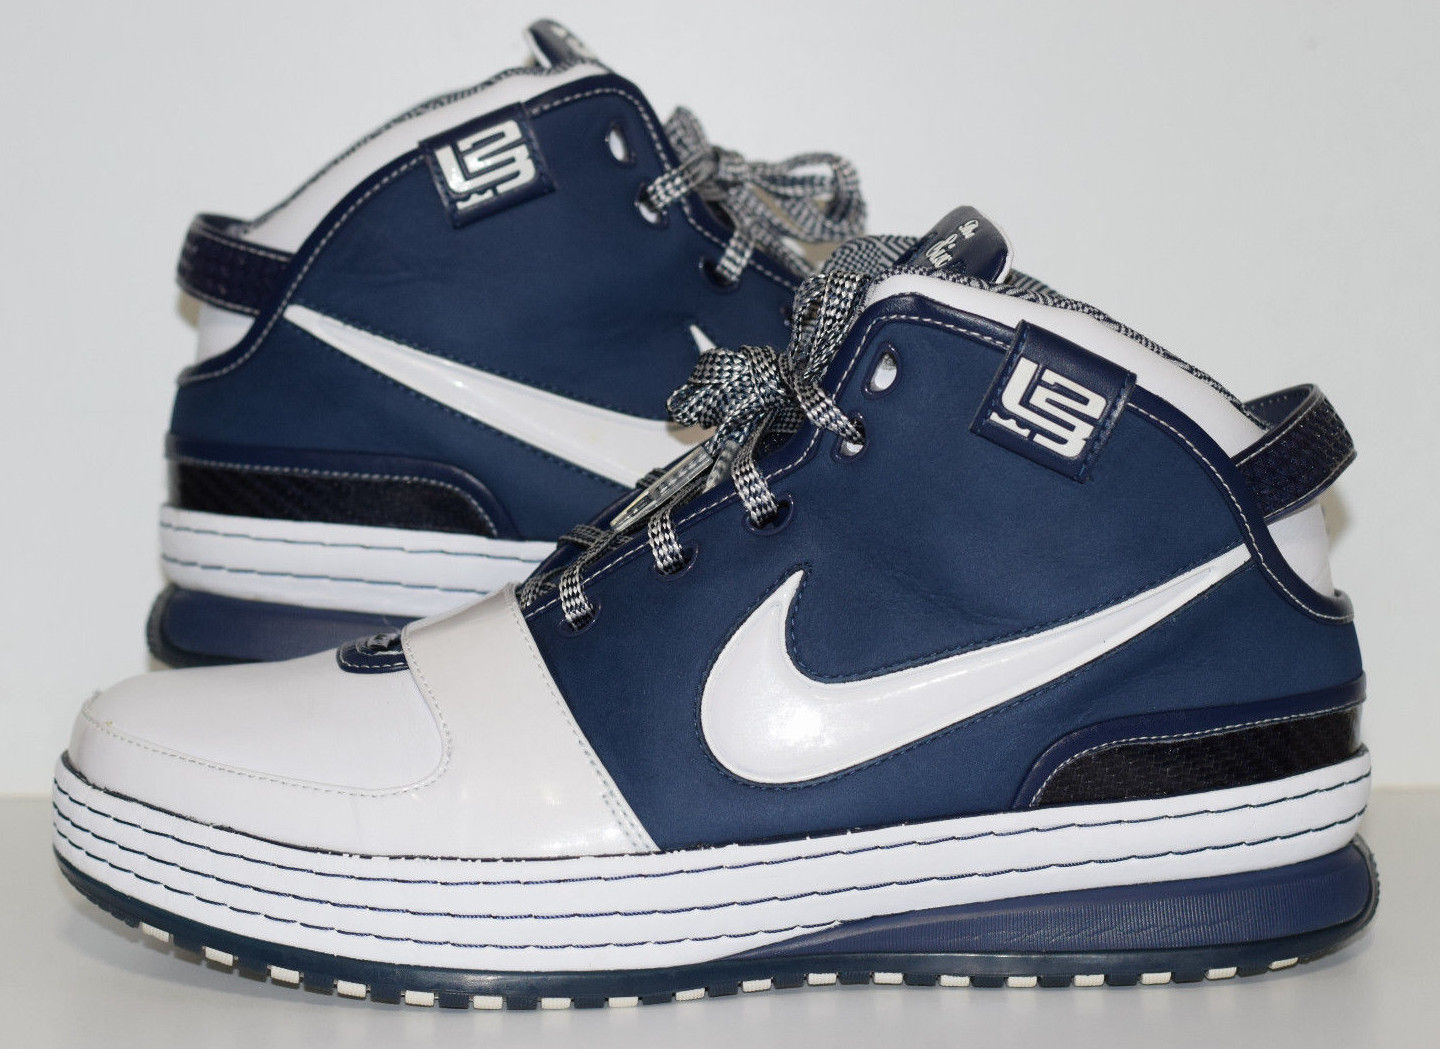 9a4fb95de312 ... france size 11.5 2008 nike lebron 6 vi new york yankees sample pe  346526 111 6f9e7